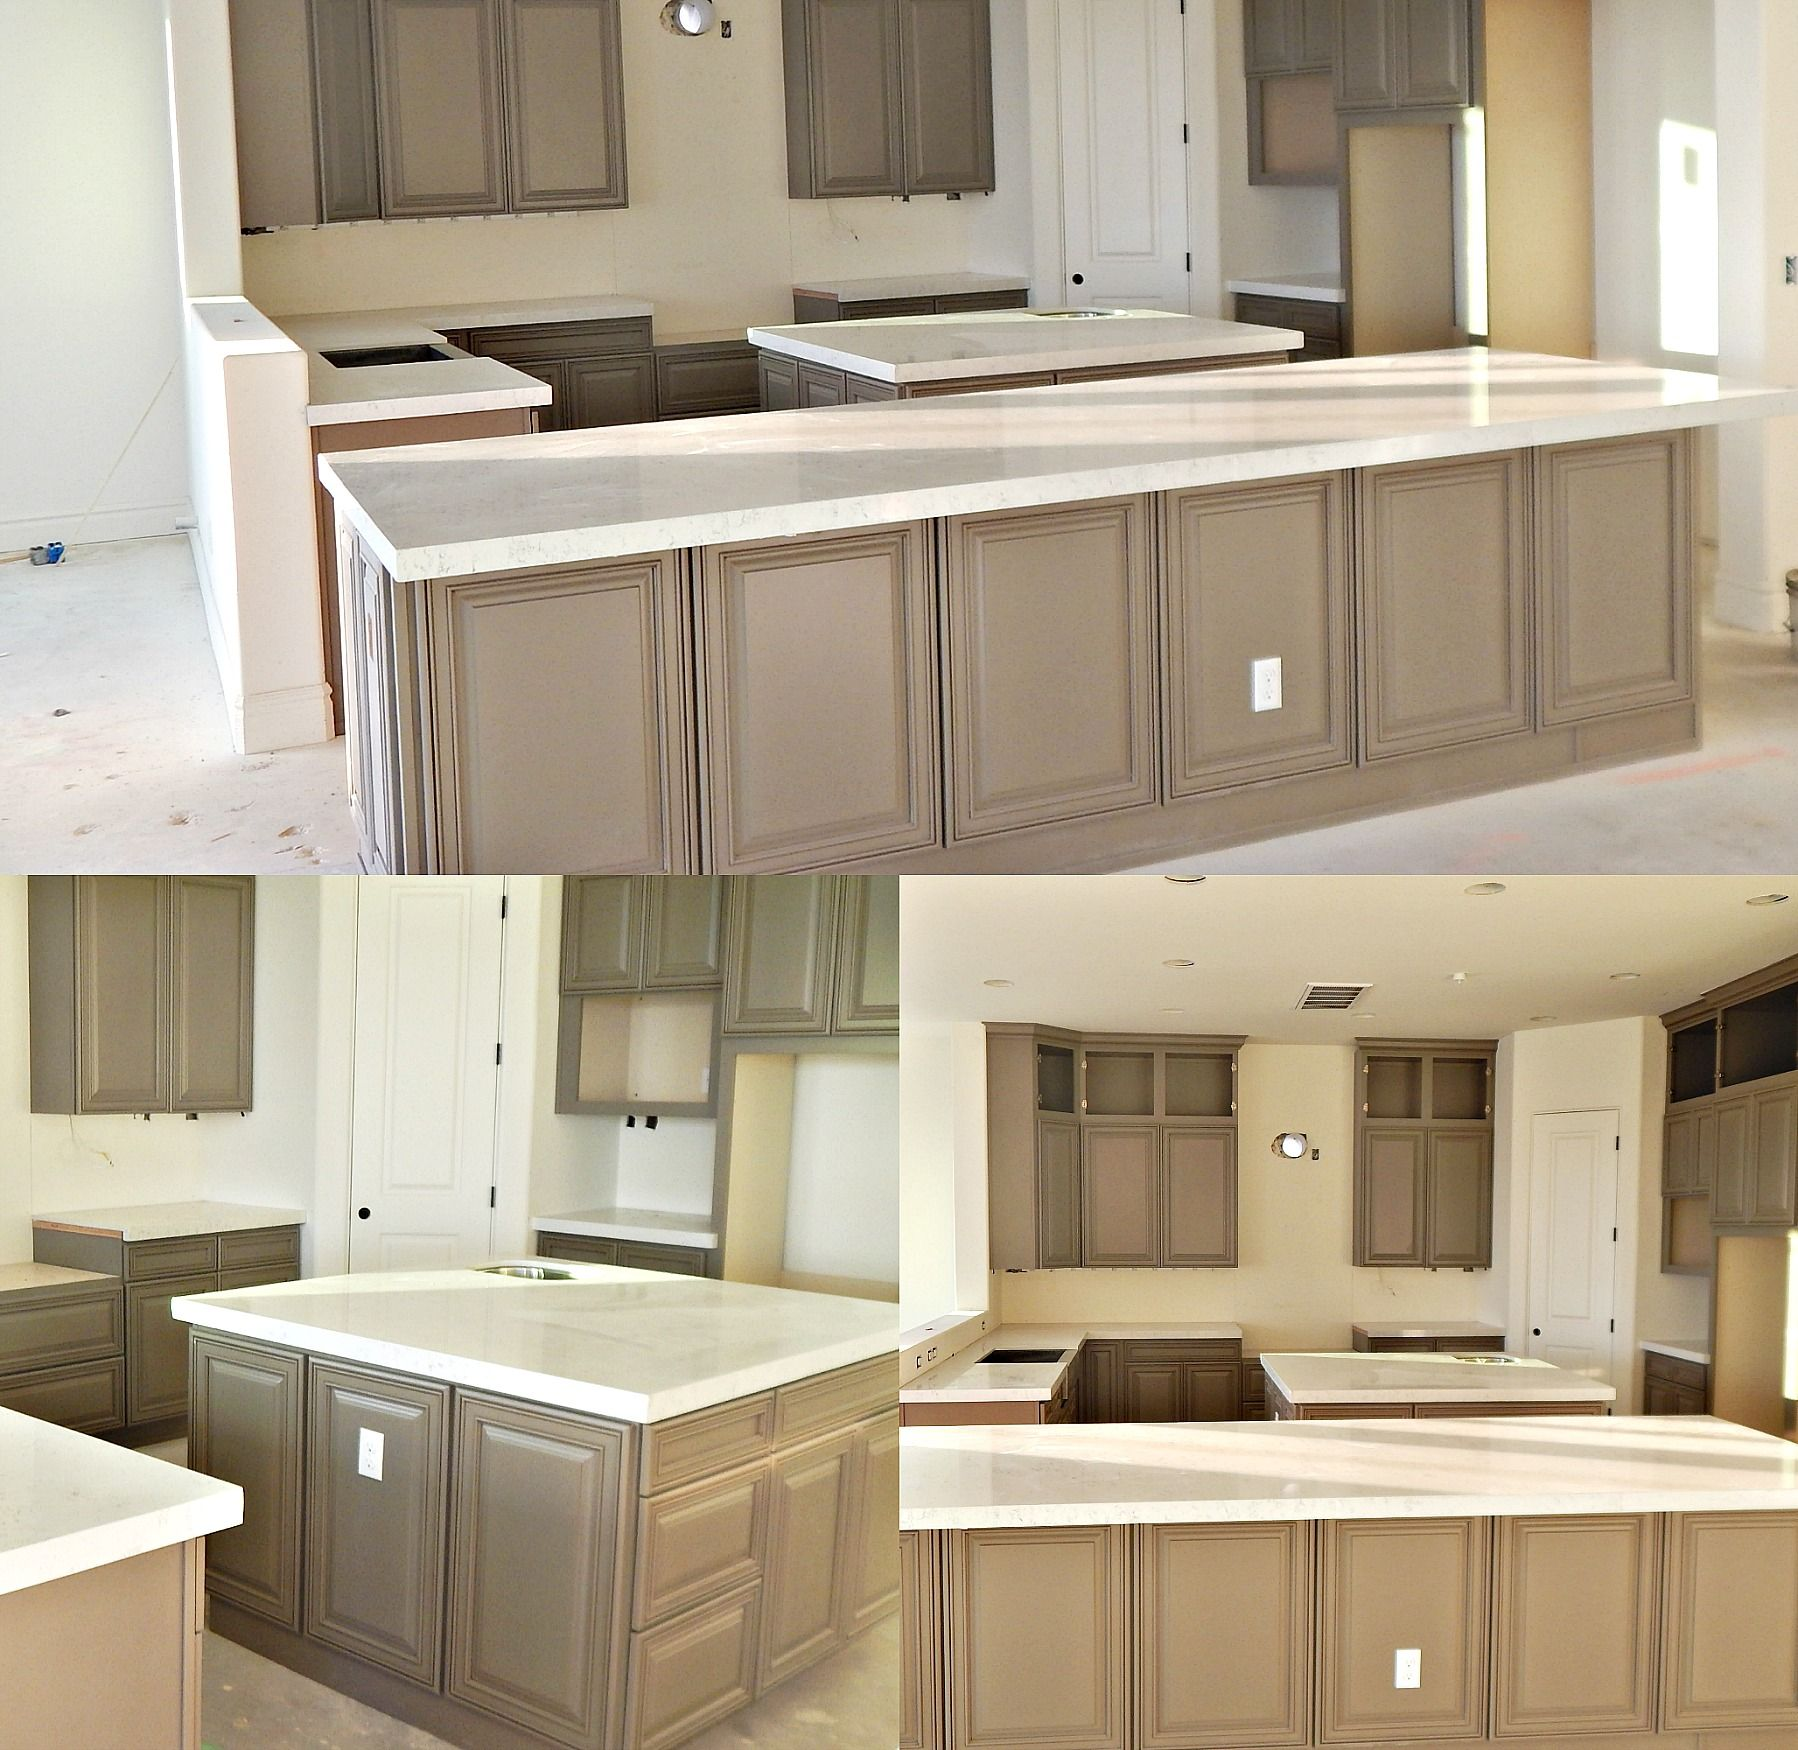 Lyskamm Quartz Countertop Remodel With Flat Polish Edge And Farm Style Sink Call For A Free Estimate 480 733 0003